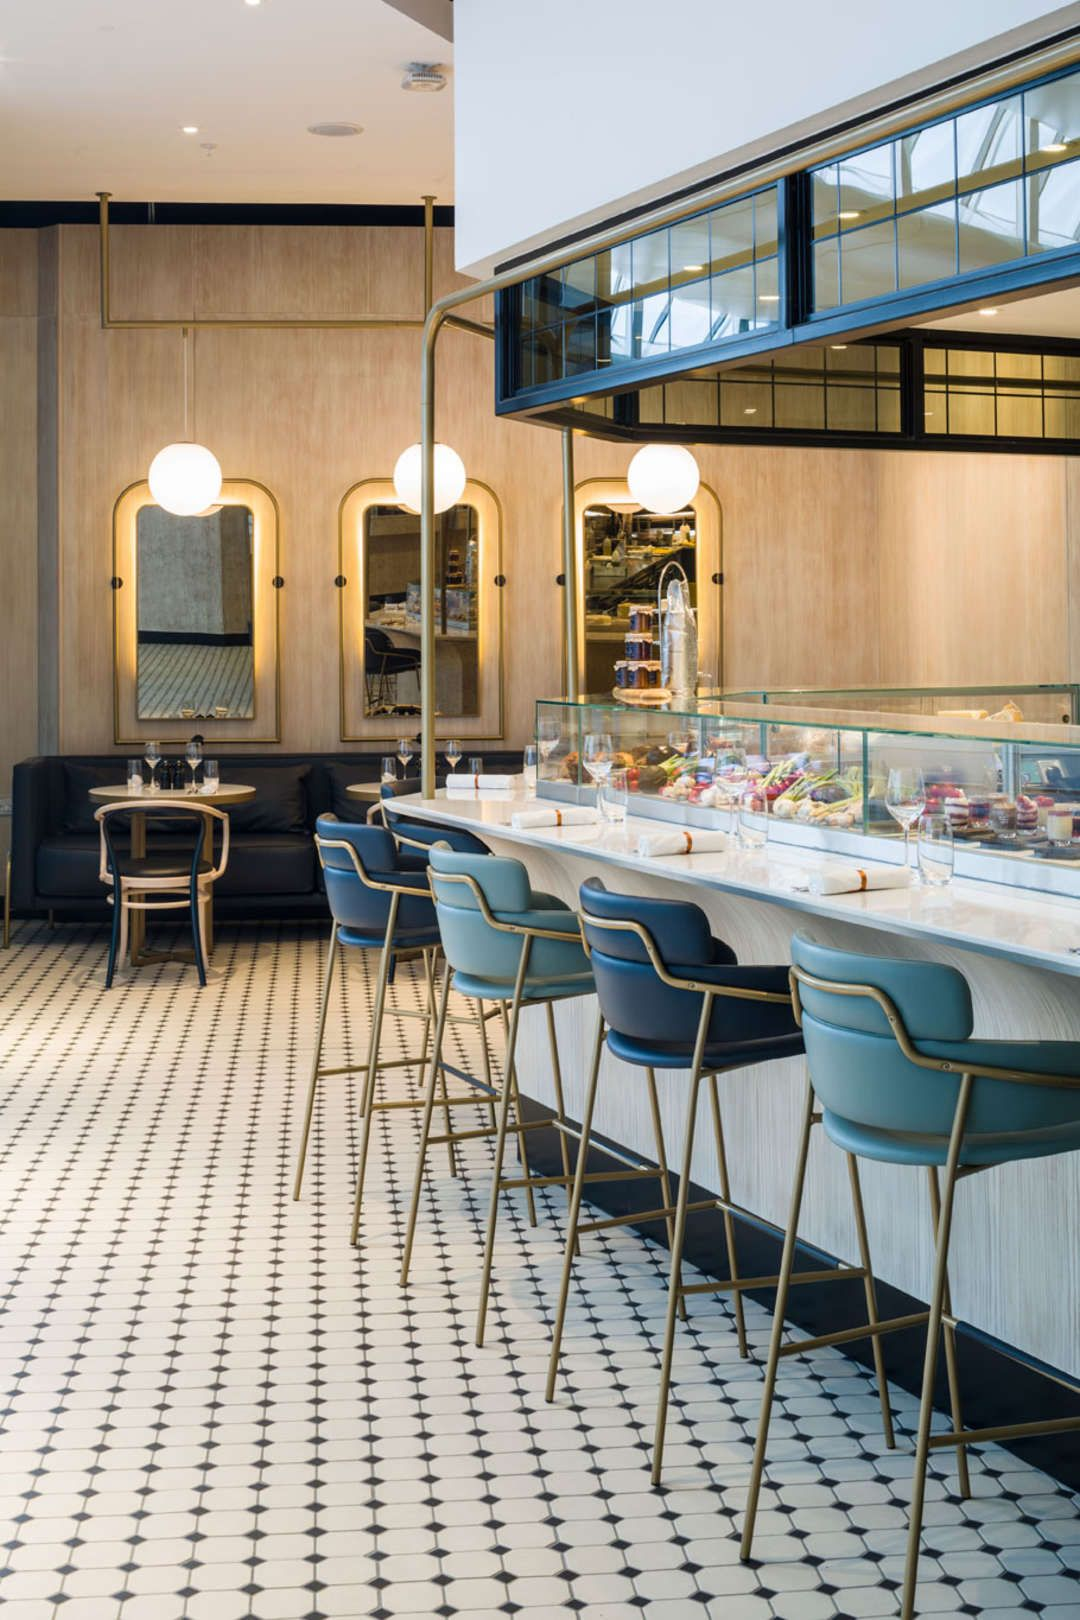 Blacksheep Have Just Unveiled Their Latest Brand And Design Offering Set To Delight The Food And Beve Gorgeous Kitchens Bar Design Restaurant Restaurant Design